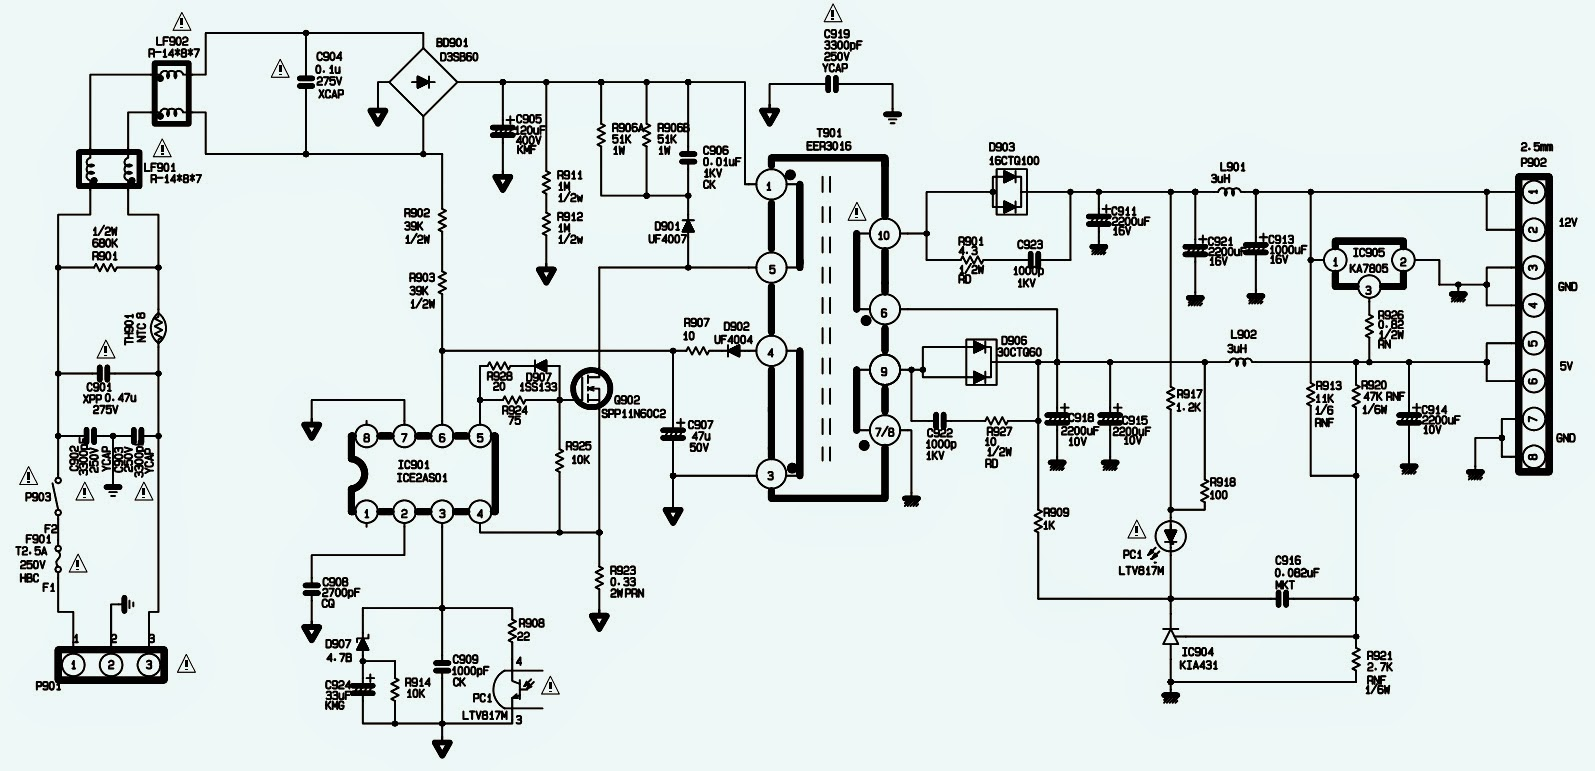 [WQZT_9871]  For Lg Microwave Oven Wiring Diagram - 2b1 Wiring Diagram Repair Manual for Wiring  Diagram Schematics | Lg Wiring Diagram |  | Wiring Diagram Schematics